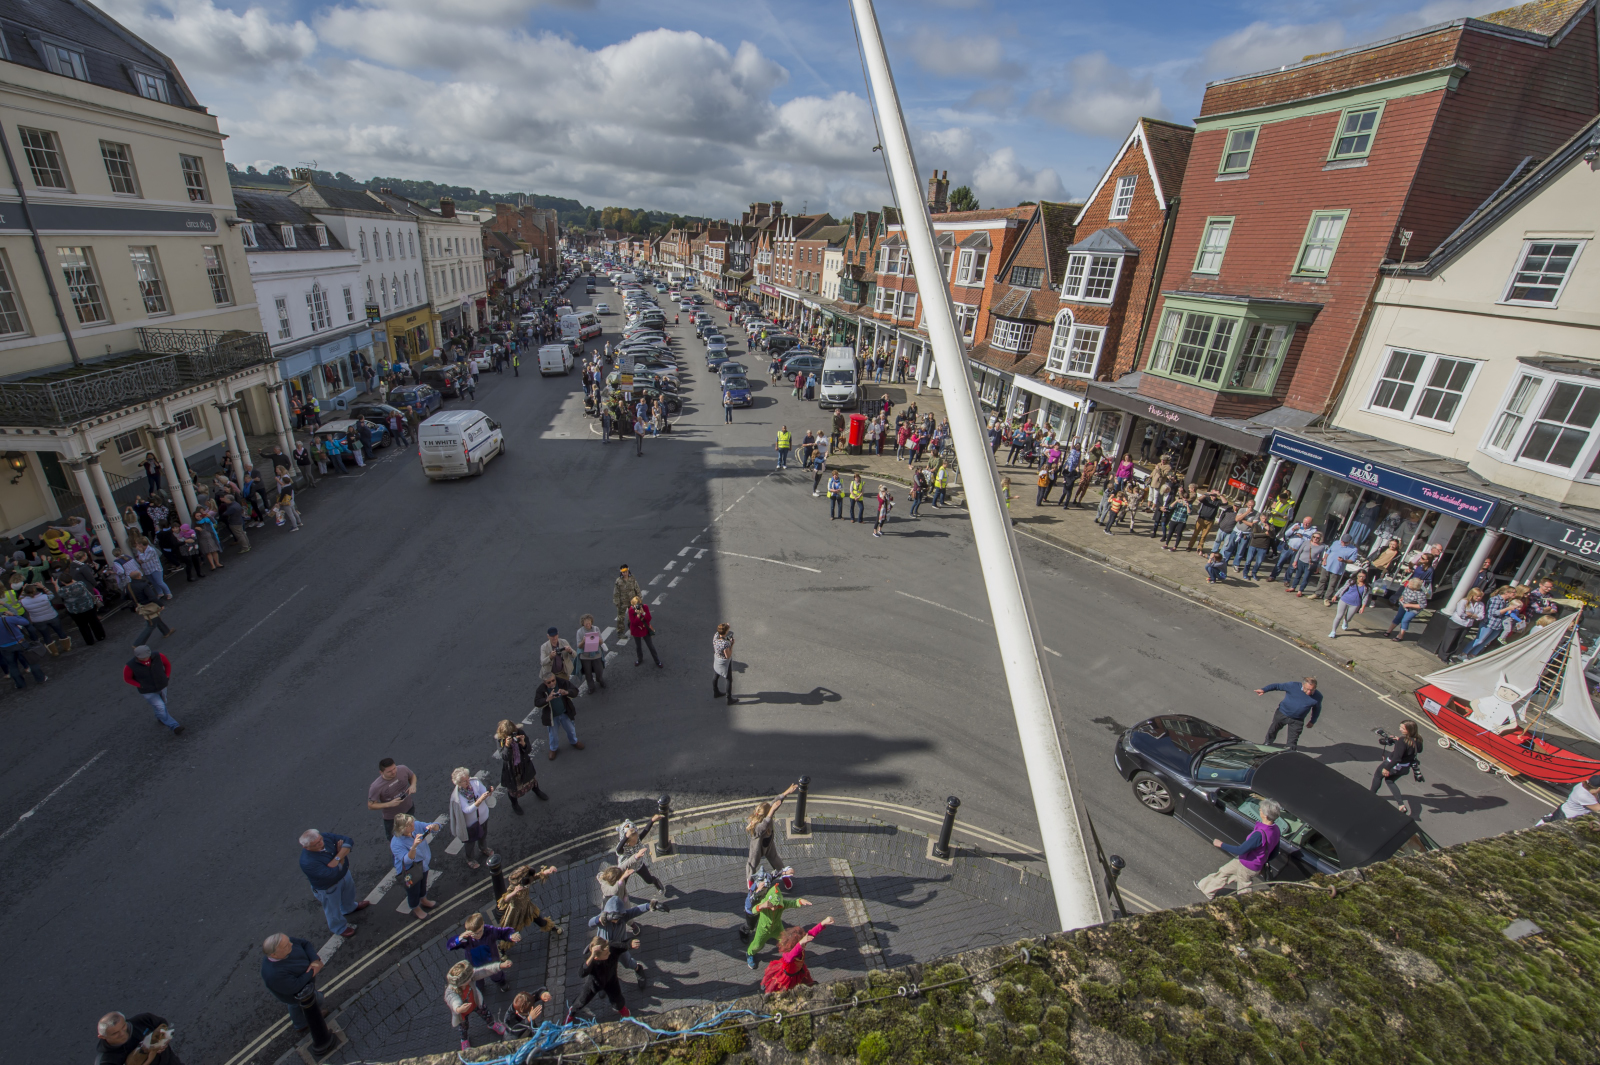 The scene of the FlashMob from the Town Hall balcony